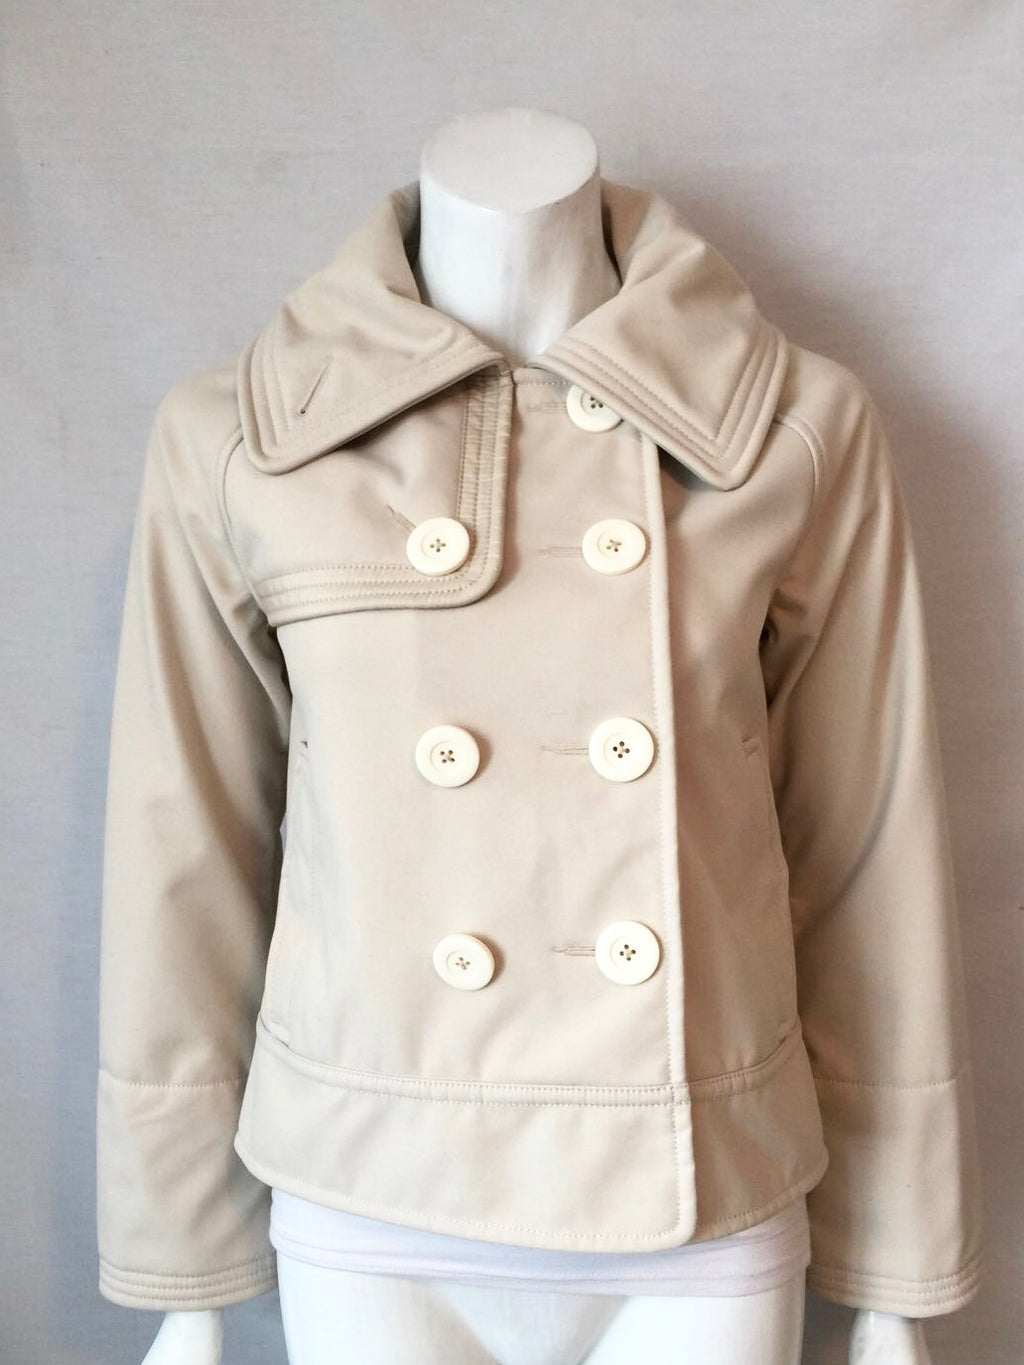 Lululemon Cream Coco Soft Shell Peacoat Jacket Size 6